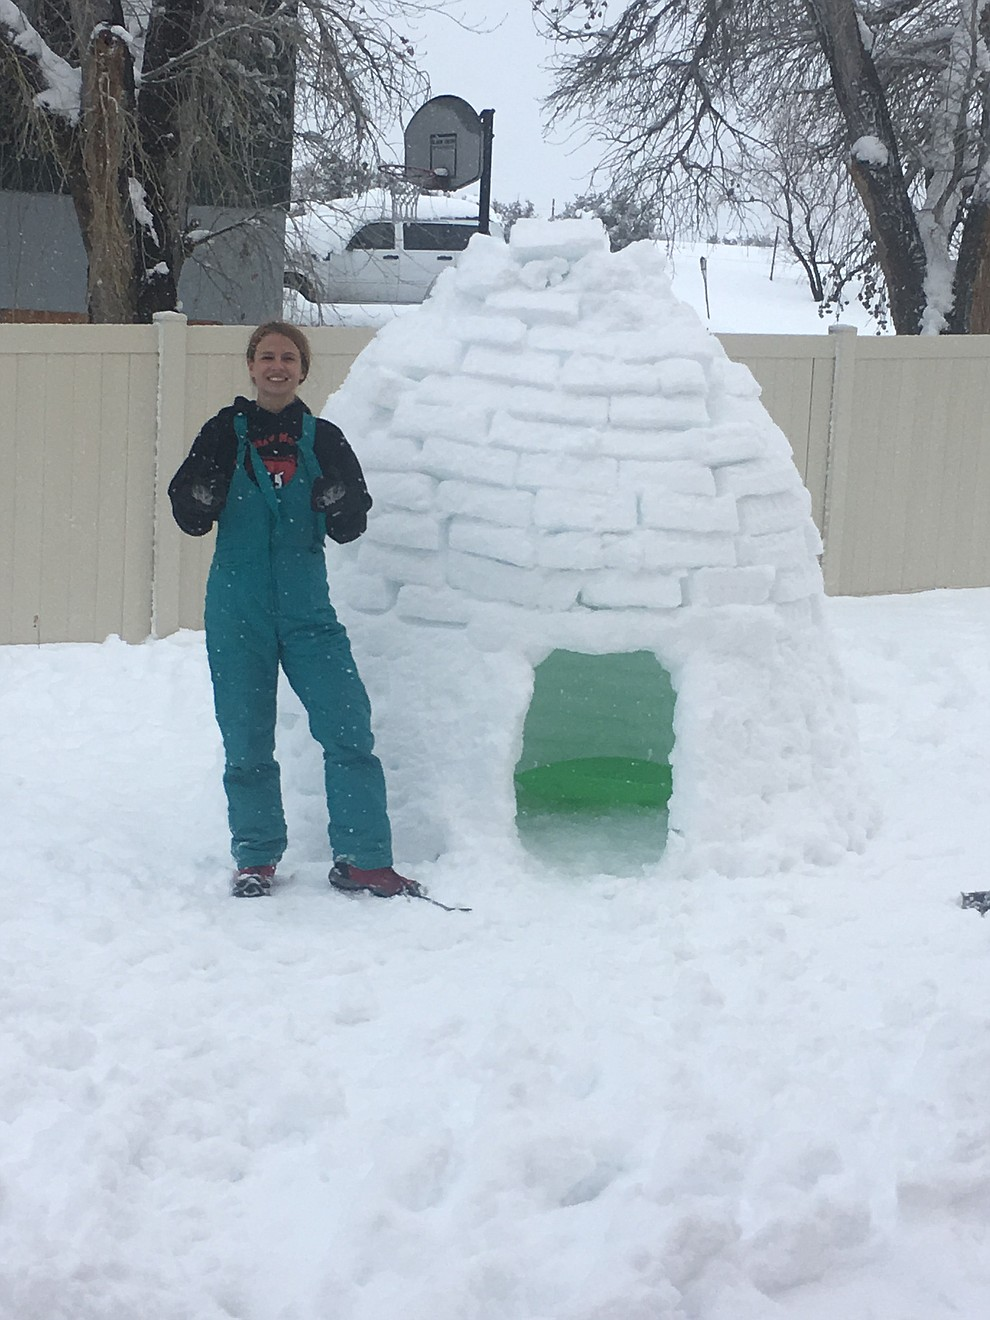 Brinlee Kidd of Dewey, AZ built an igloo for her Bassett hound, Caesar. Aptly names, Caesar's Palace